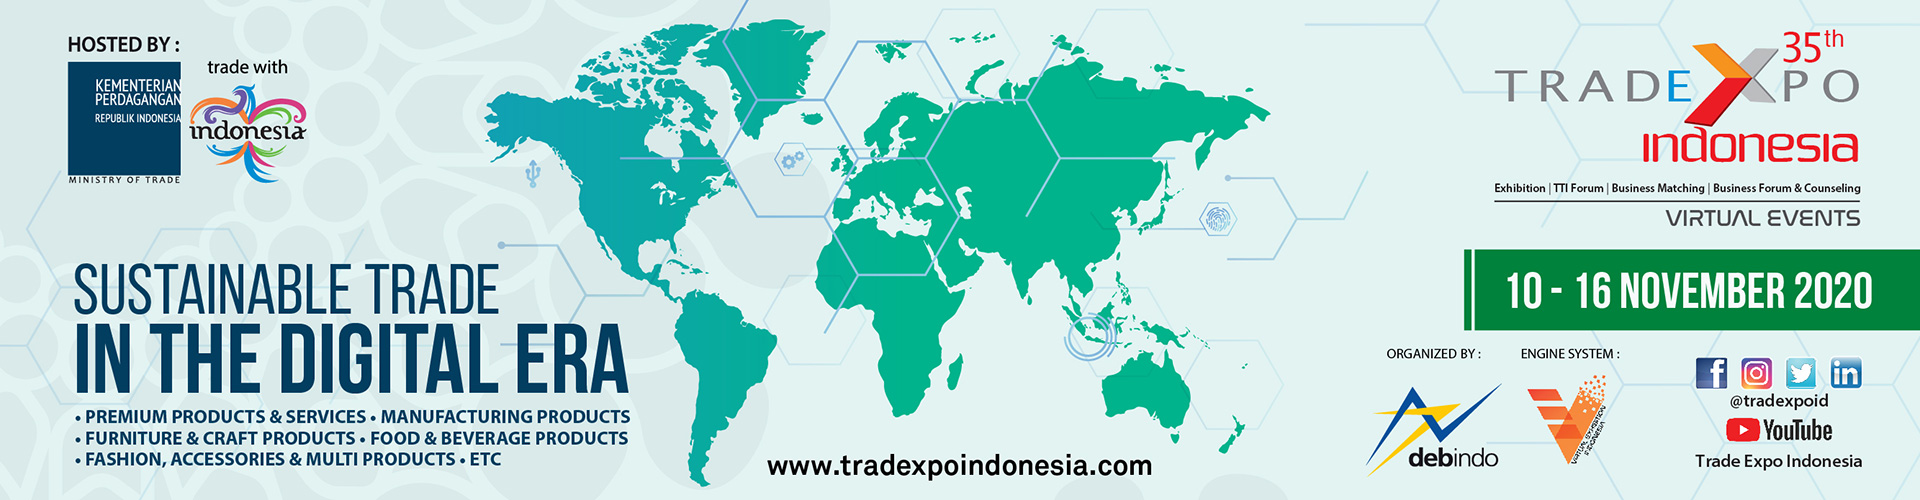 The International Trade Council - a Peak Body, Non-Profit, International Chamber of Commerce. Assisting Businesses and Governments involved in International Trade and Investment.